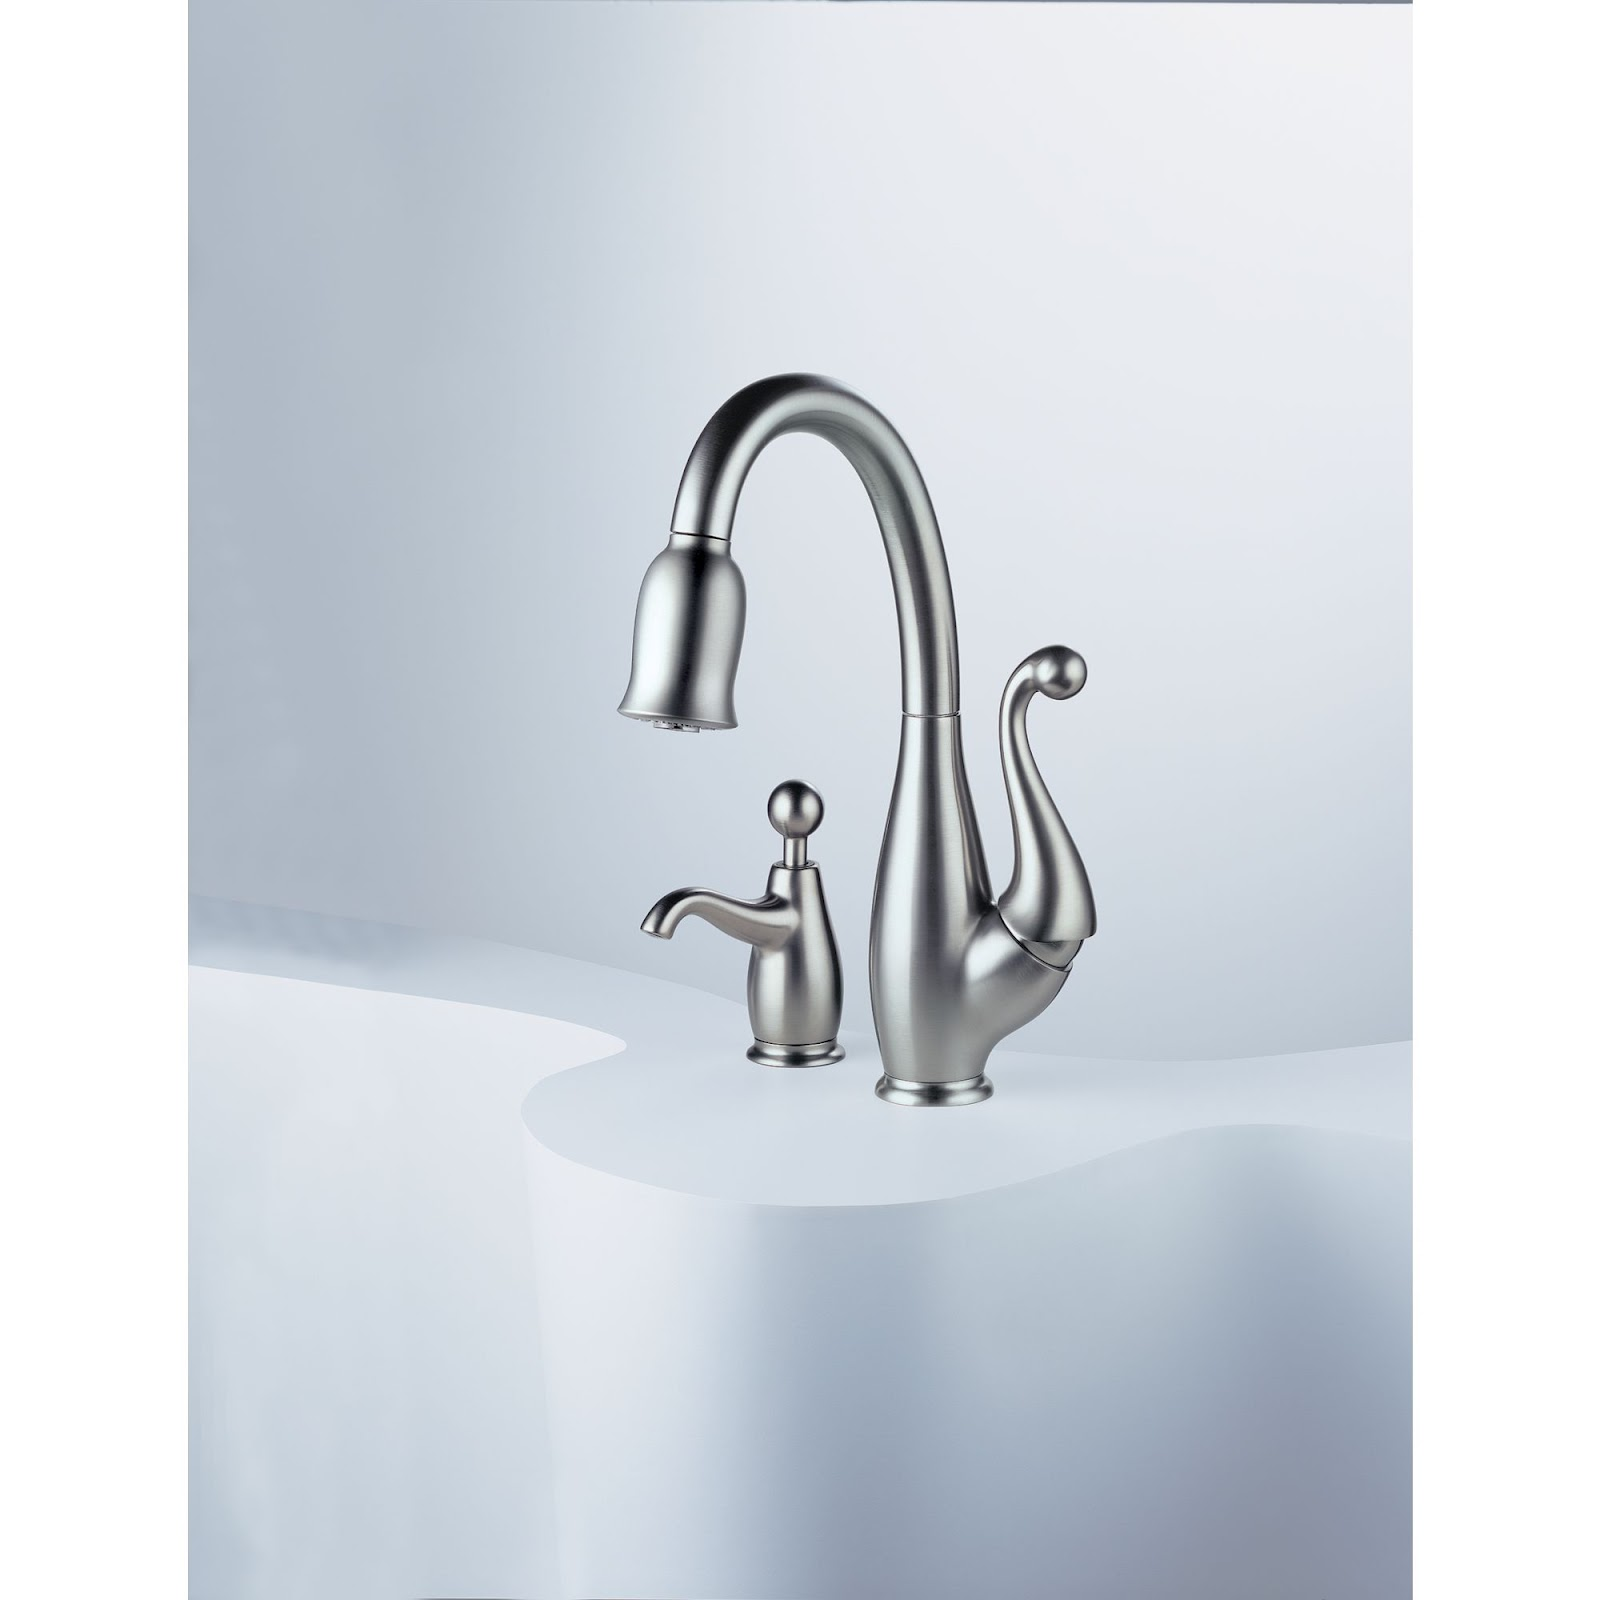 Unique Brizzo Faucets Component - Faucet Collections - thoughtfire.info